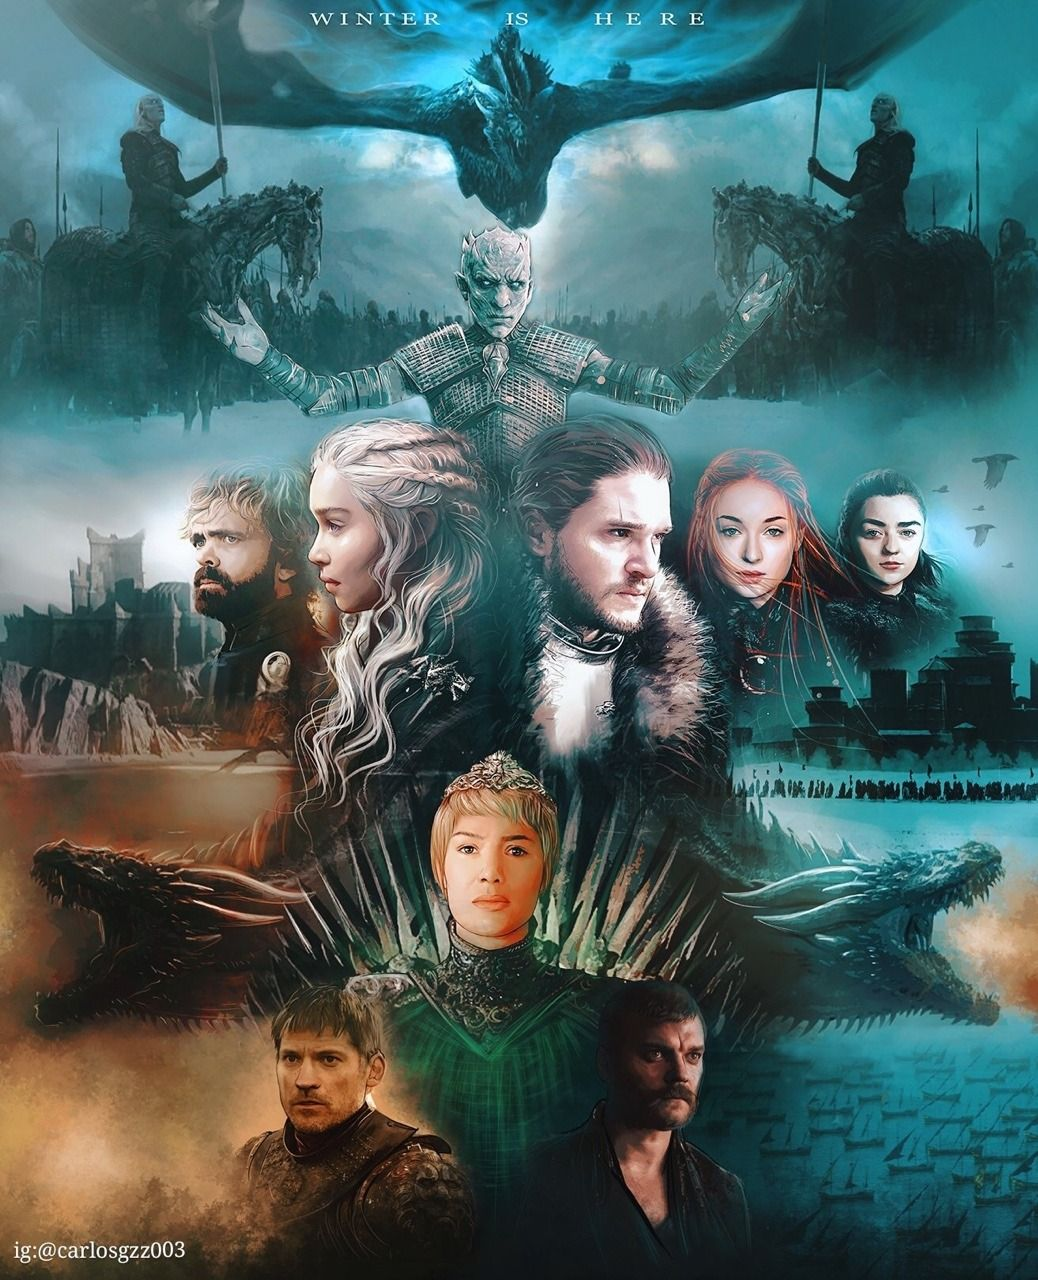 Some Incredible Game Of Thrones Season 7 Fan Arts From Carlosgzz0033 From Instagram Daene Game Of Thrones Artwork Game Of Thrones Illustrations Winter Is Here Starks game of thrones season 7